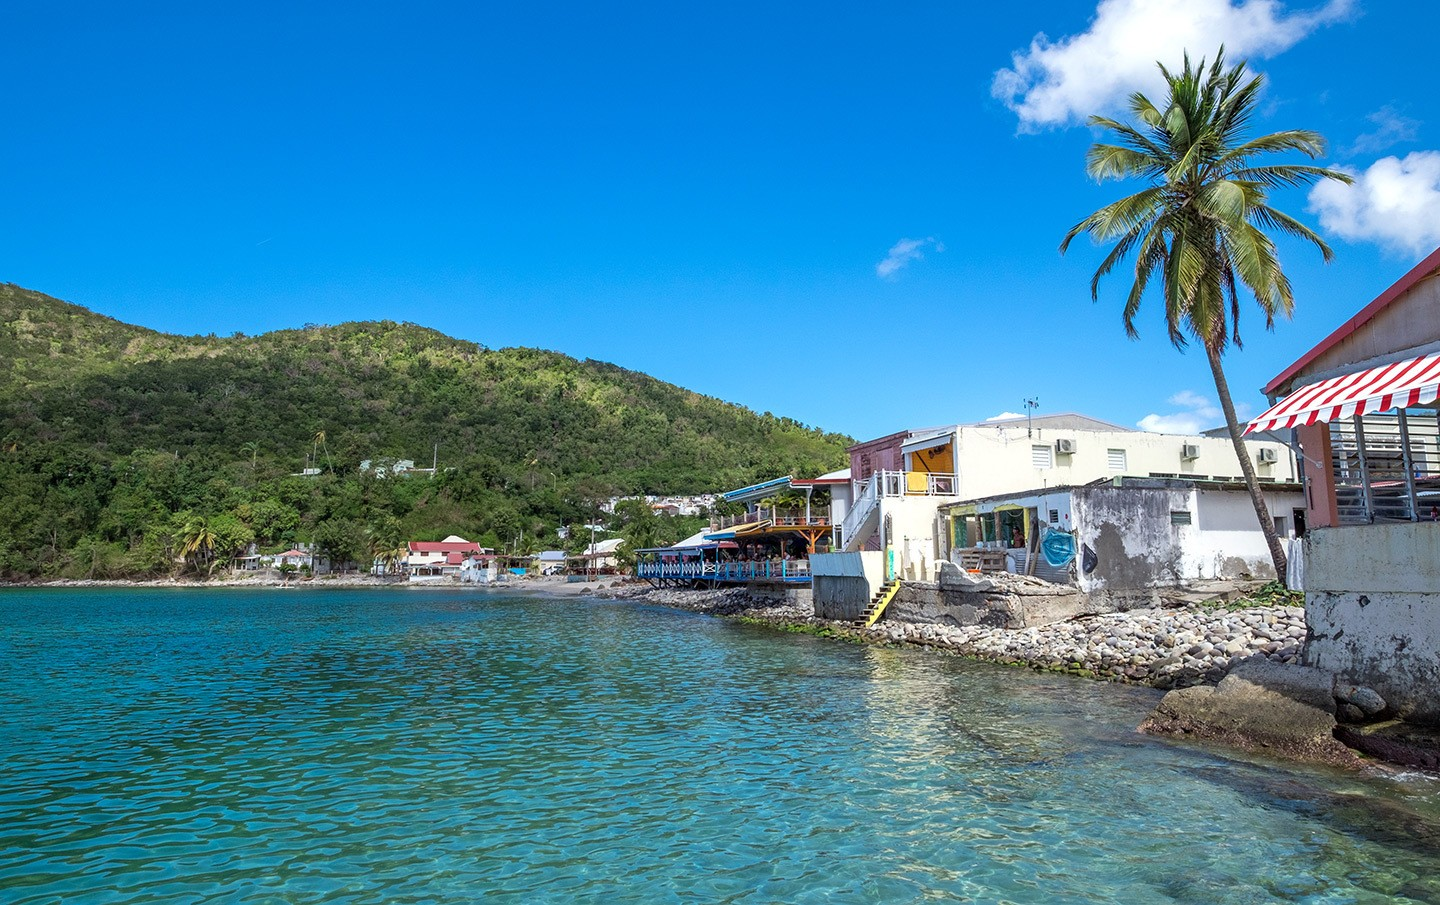 Deshaies waterfront in Basse-Terre, Guadeloupe